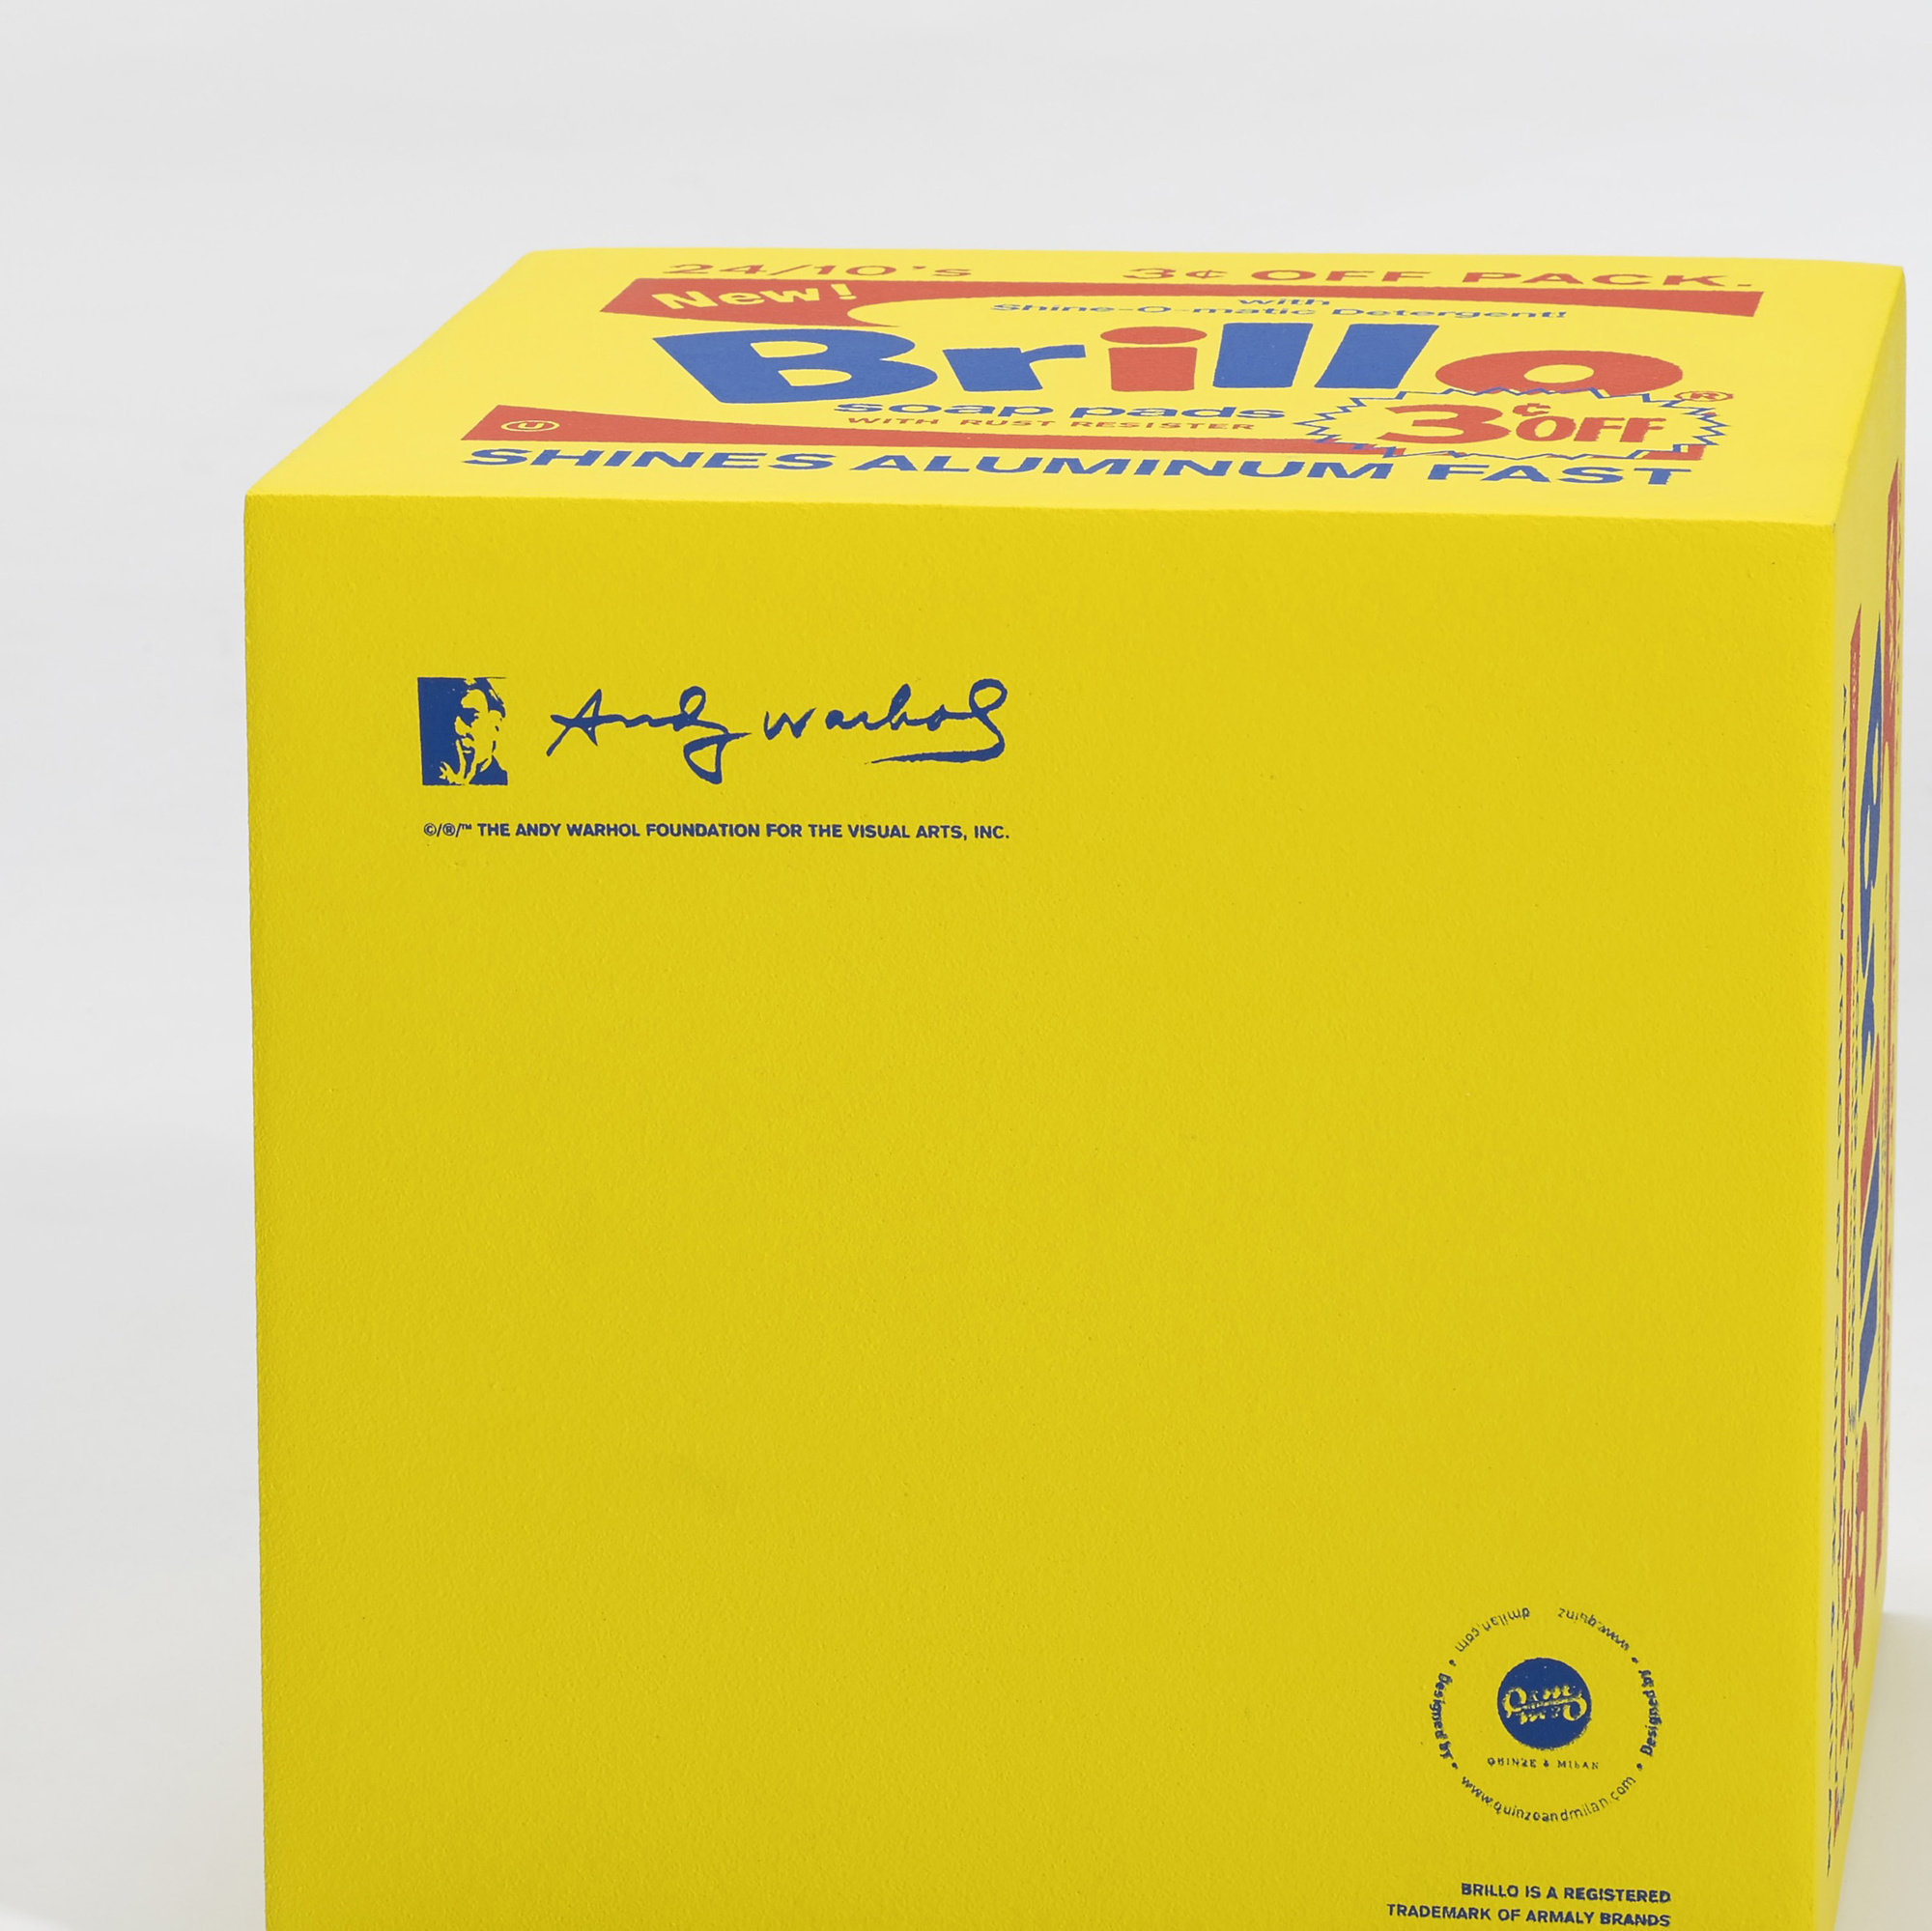 782: Andy Warhol / Brillo pouf yellow (2 of 2)